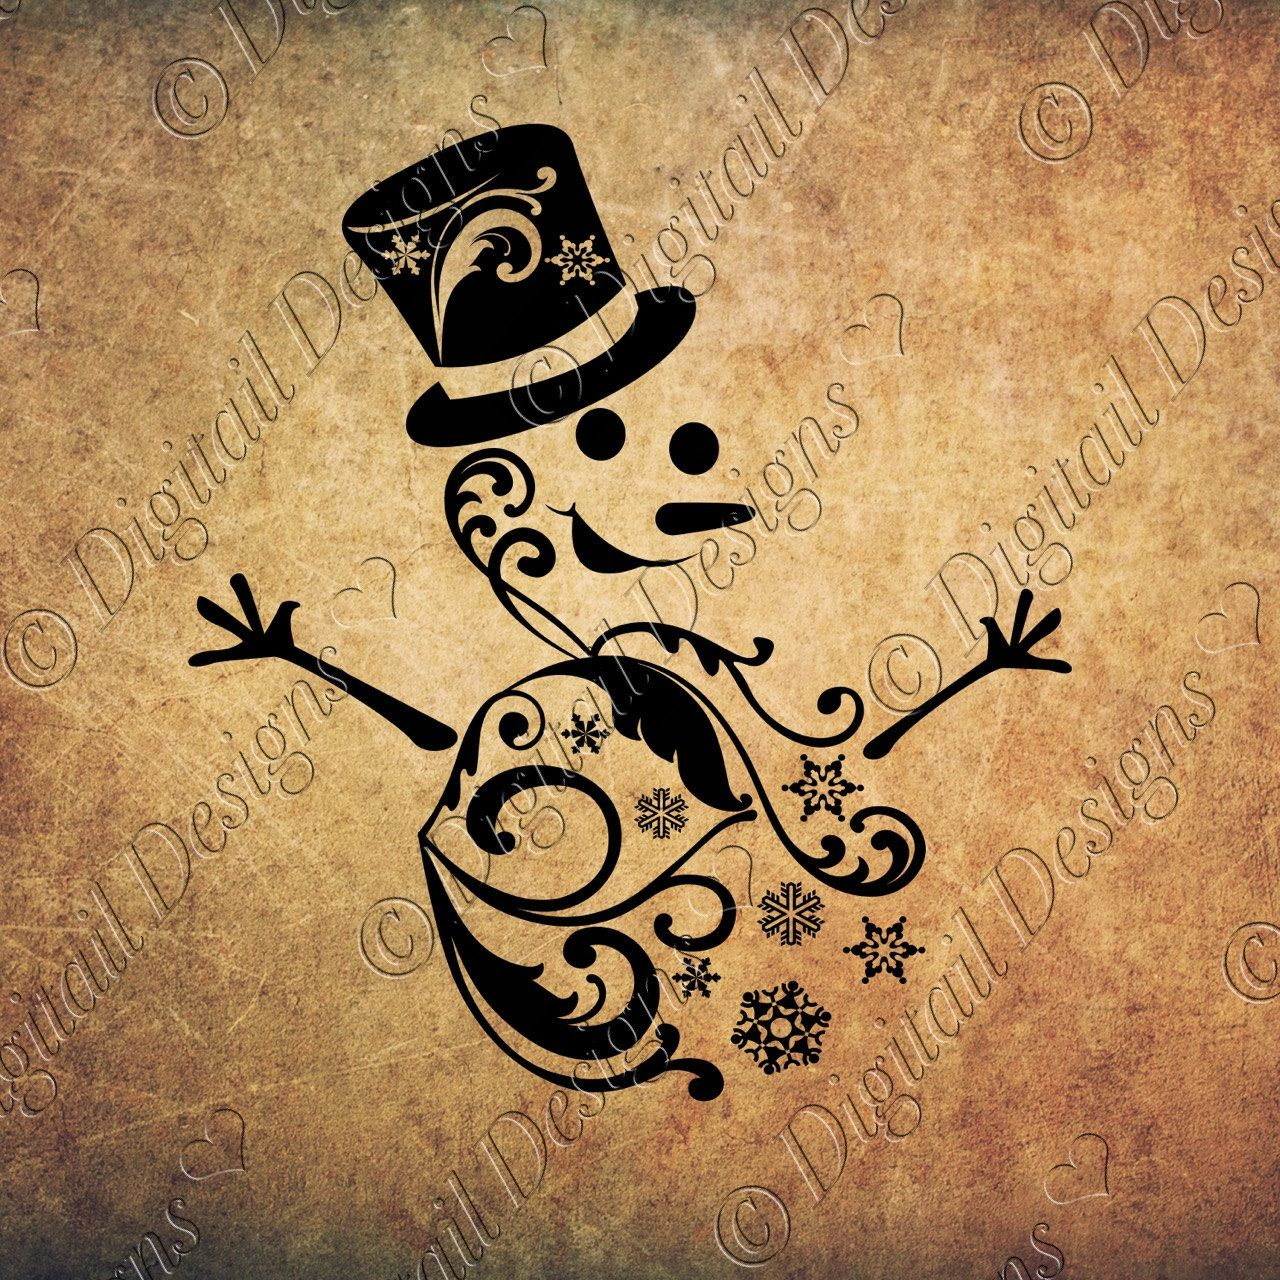 Swirl Snowman SVG PNG DXF Eps Fcm Cut file for Silhouette